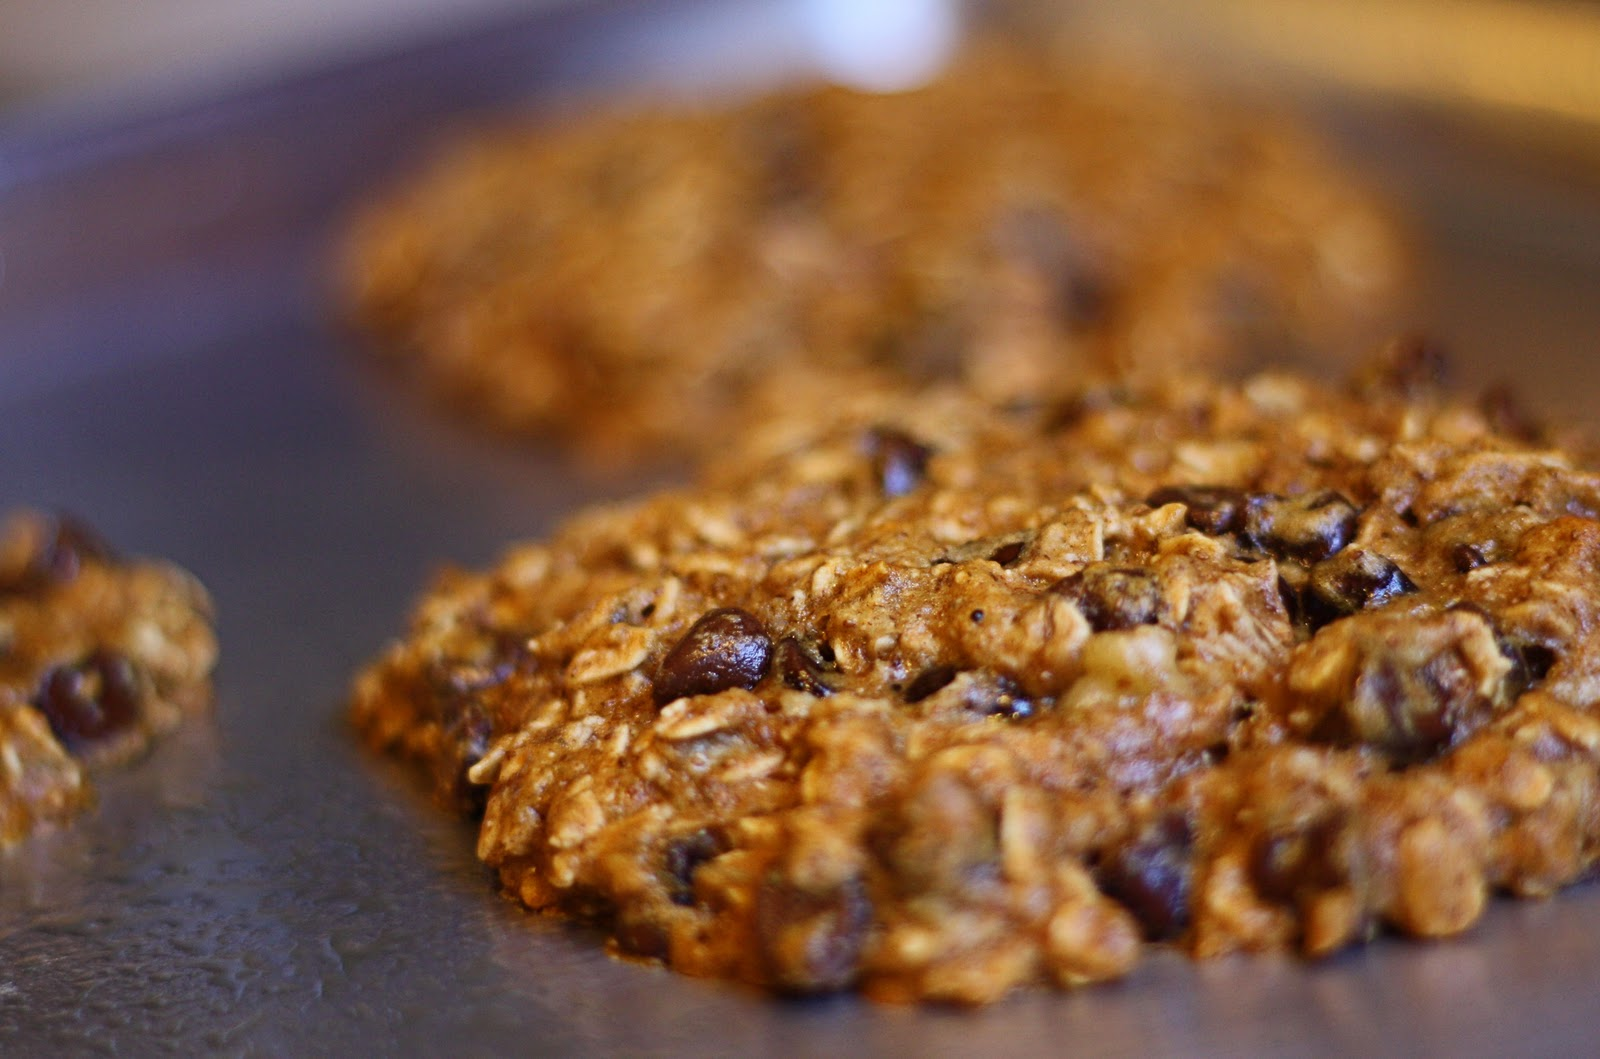 Download image Banana Oatmeal Chocolate Chip Cookies PC, Android ...